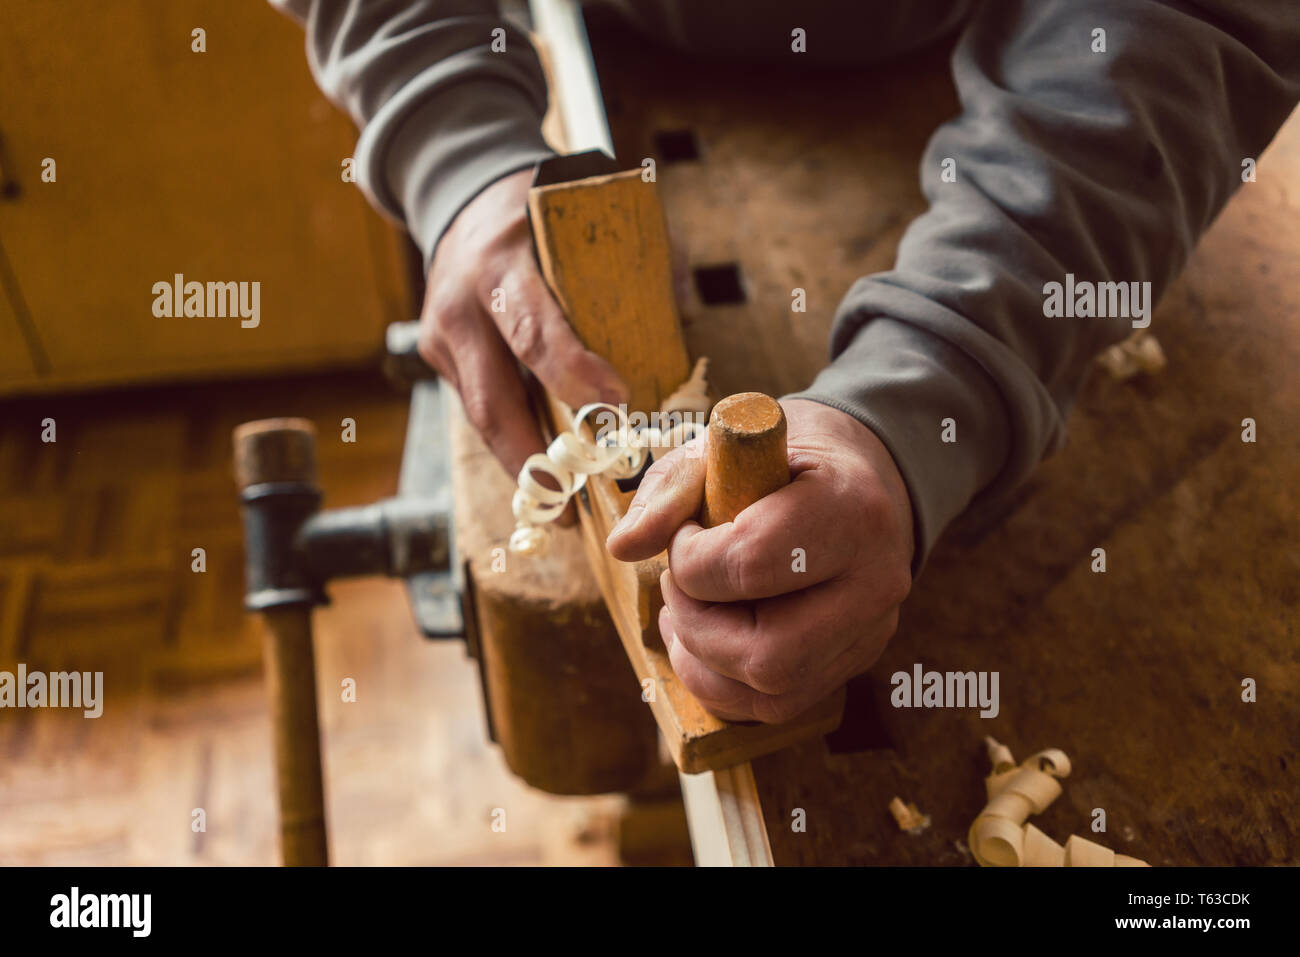 Top view of carpenter hand working with wood planer - Stock Image